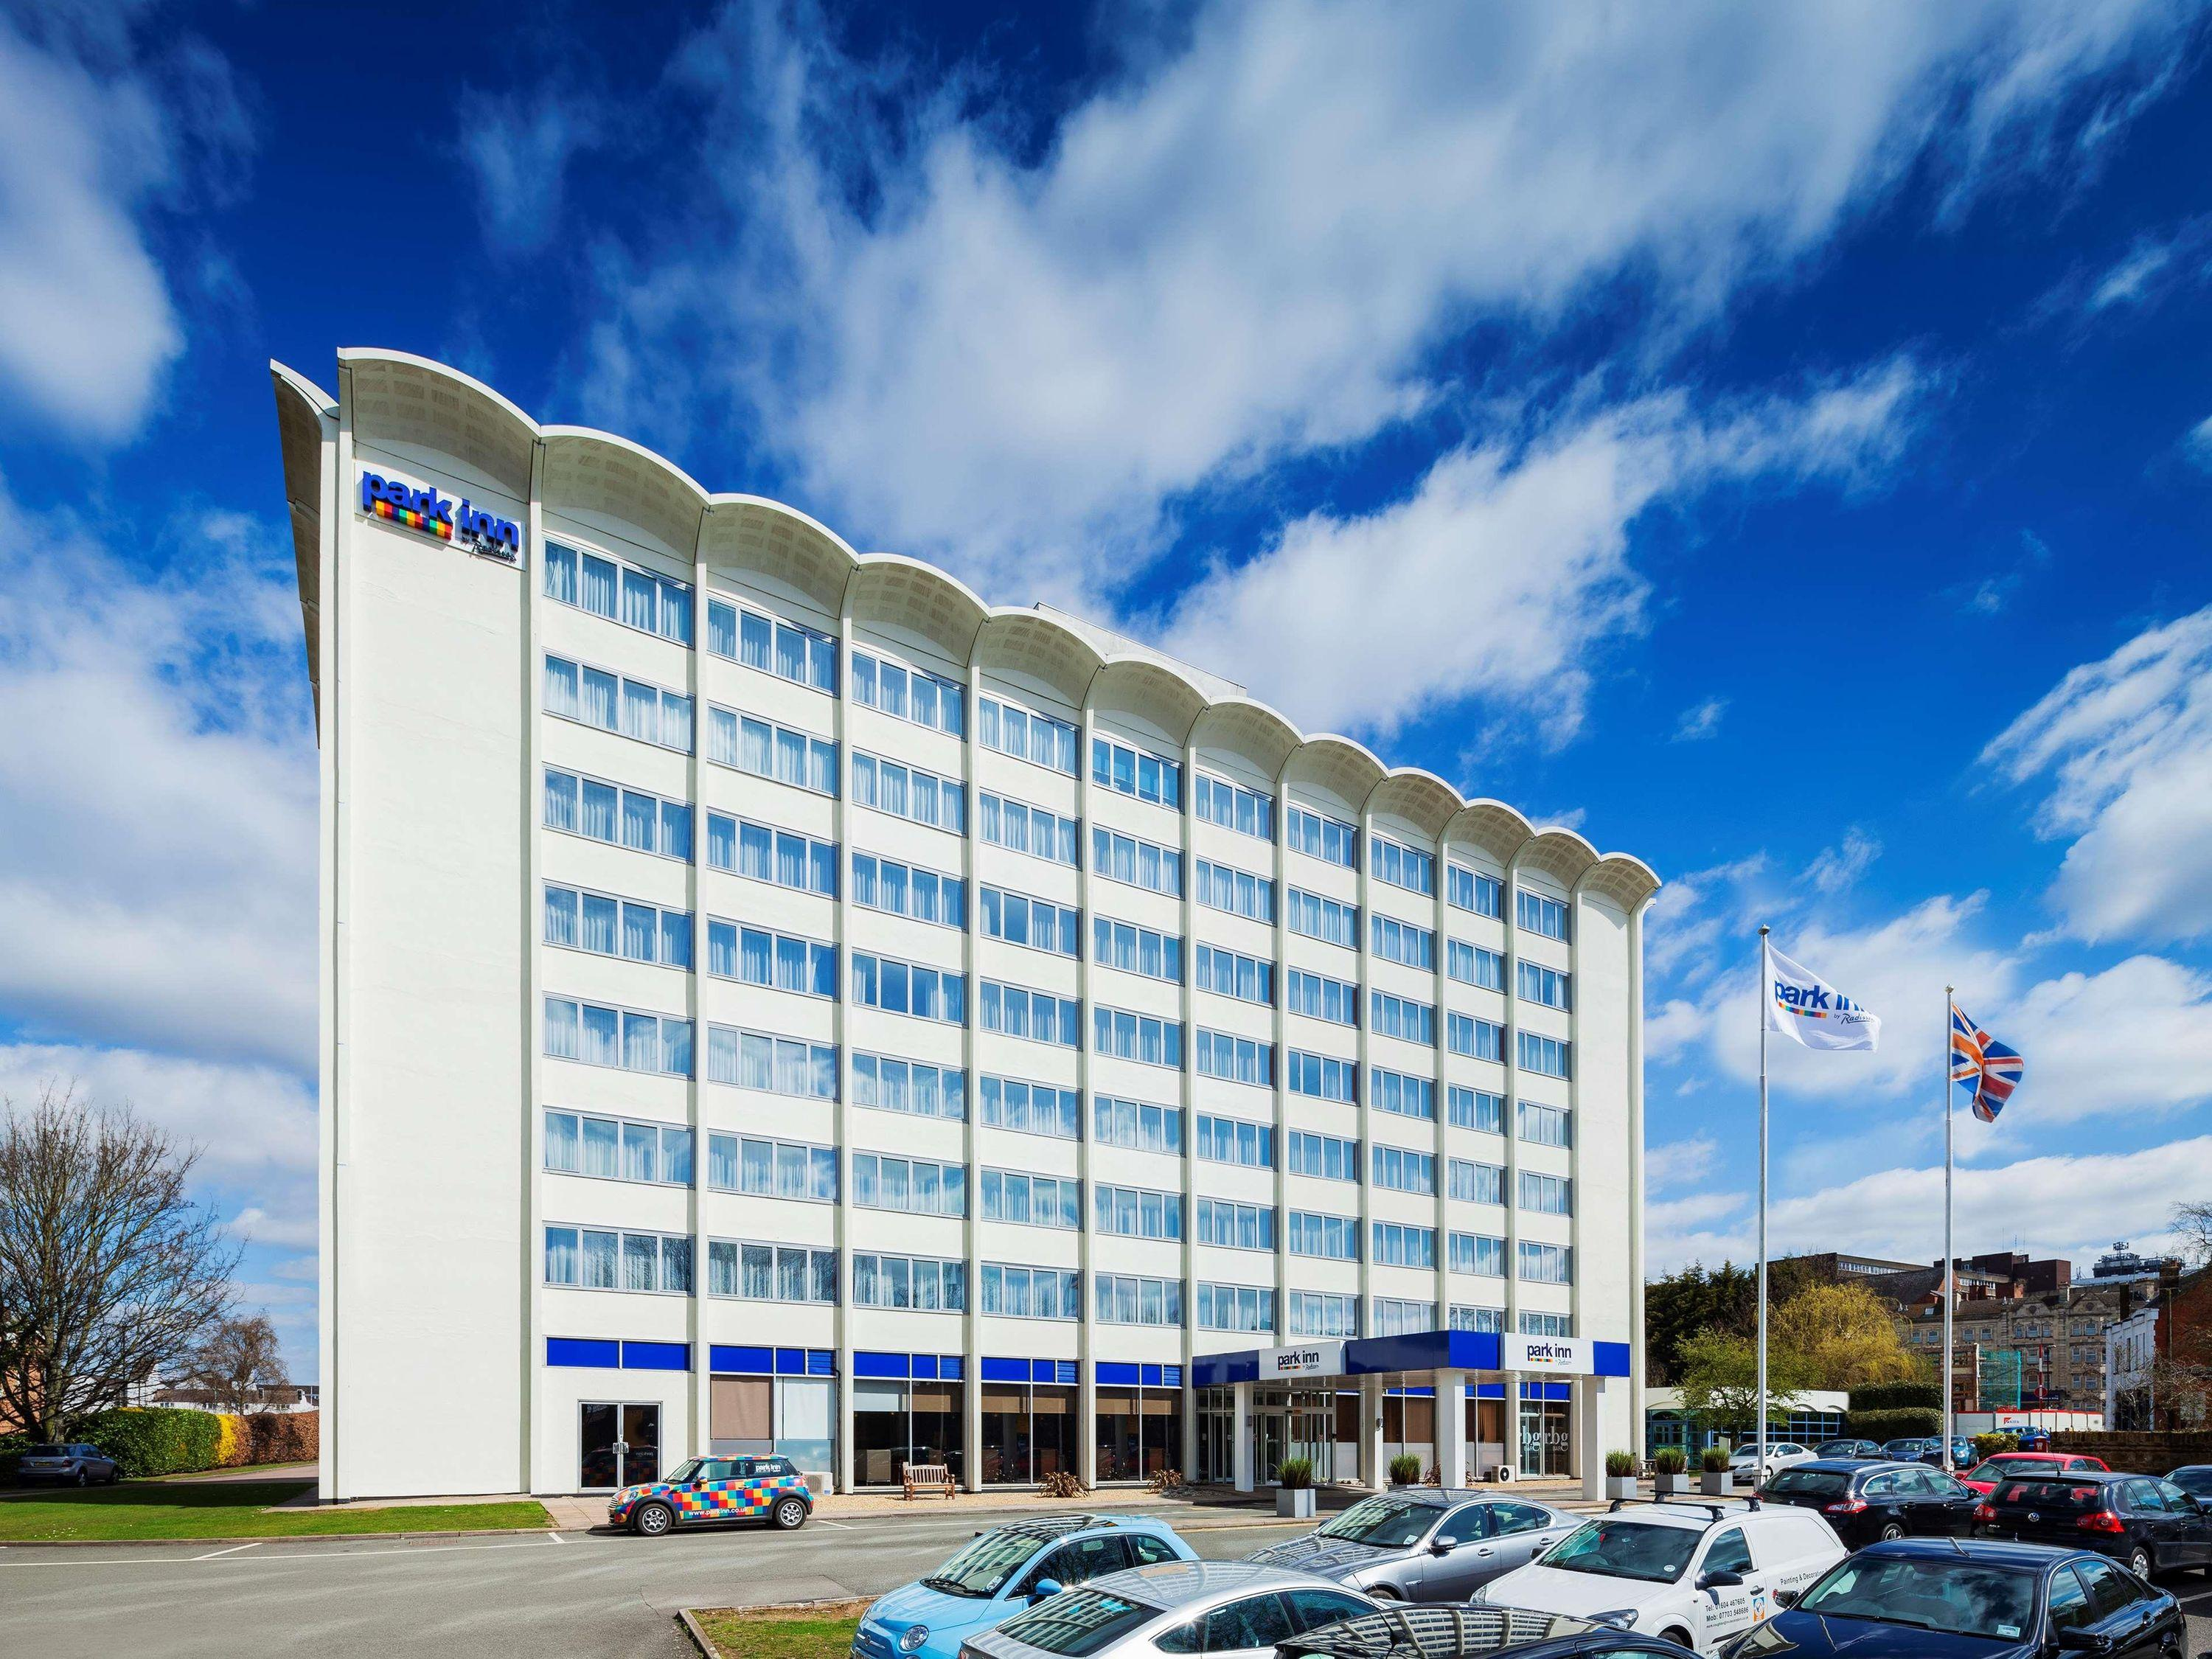 Park Inn by Radisson Hotel Northampton Town Centre